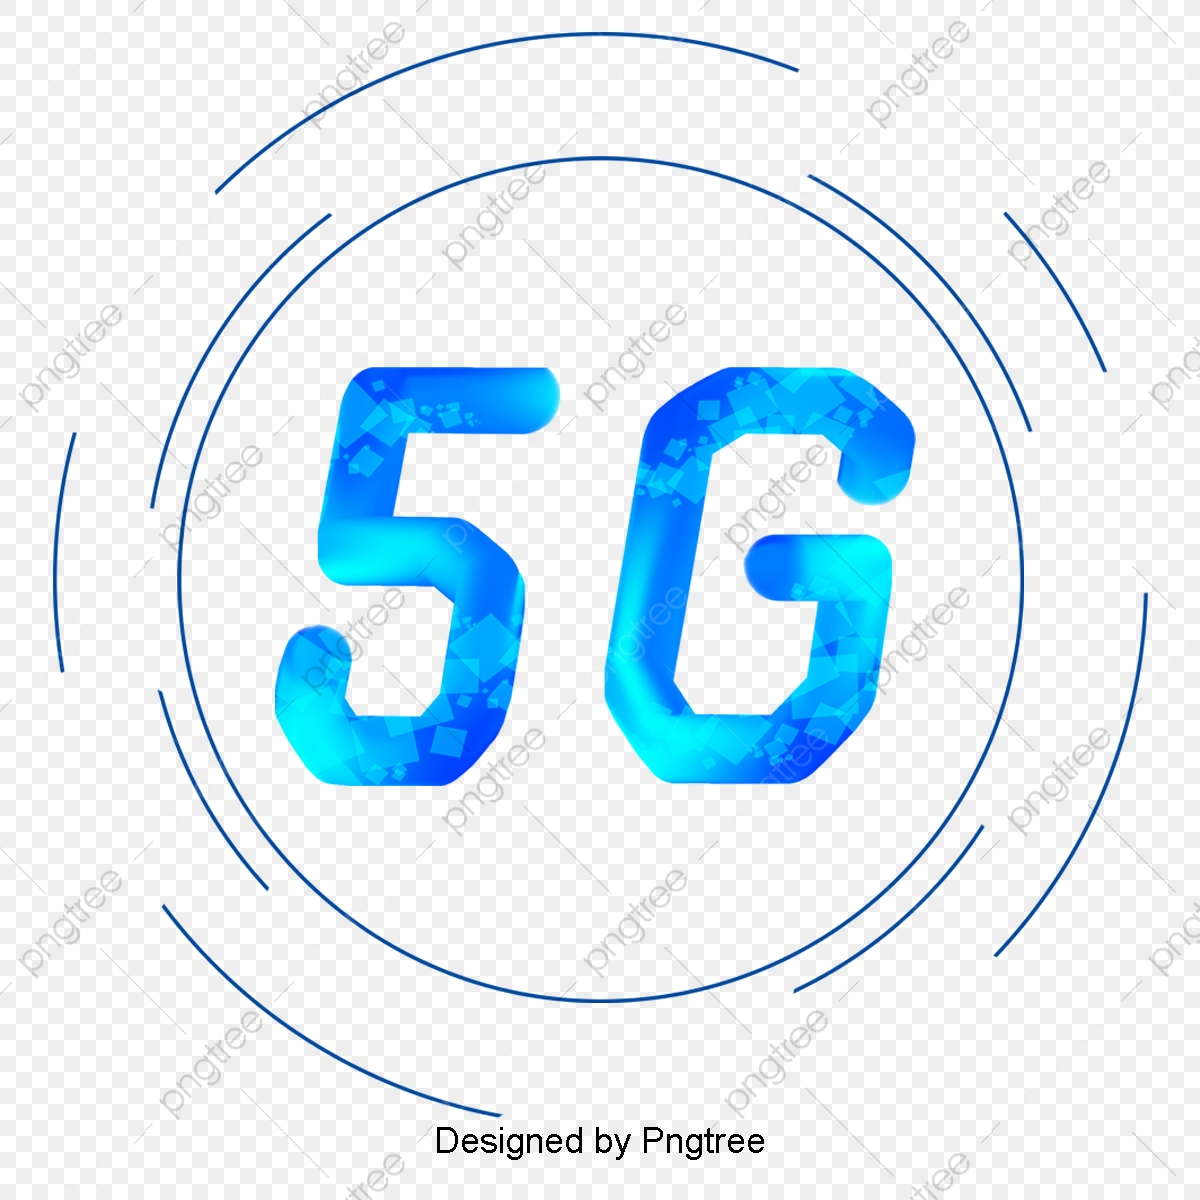 Simple 5g Technology Round Illustration, Technology, Information.